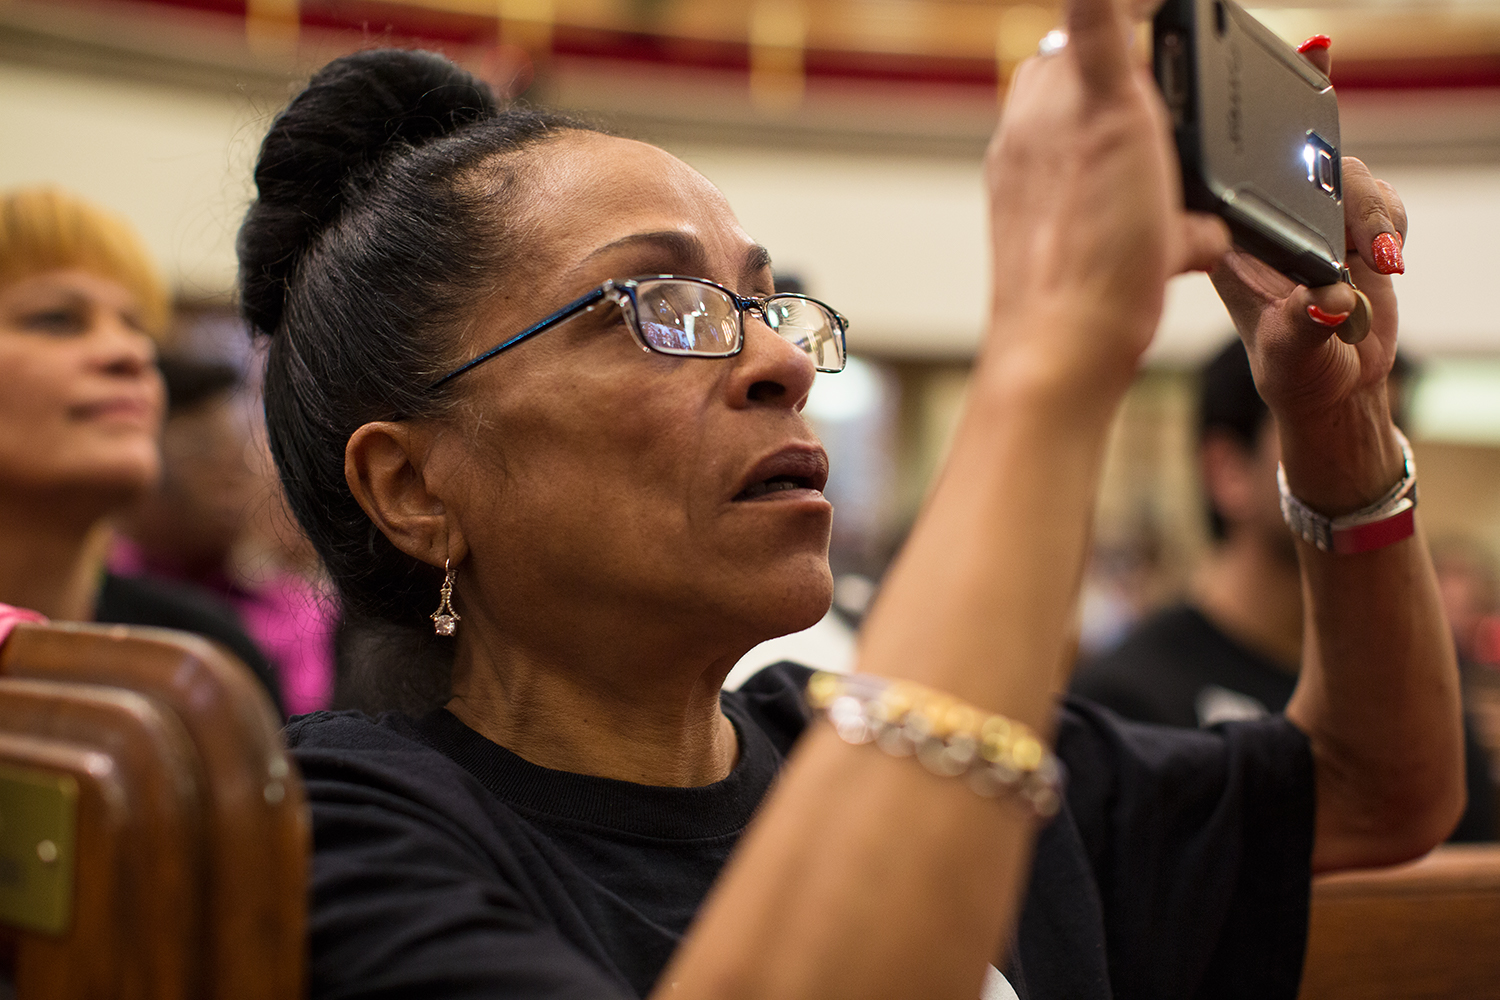 Wanda Parks of VOCAL-NY at interfaith service at Harlem's historic  Abyssinian Baptist Church  organized by advocacy group  VOCAL-NY  to call for end to the war on drugs on the eve of the United Nations General Assembly Special Session on the world drug problem ( UNGASS ), NY, NY, 2016